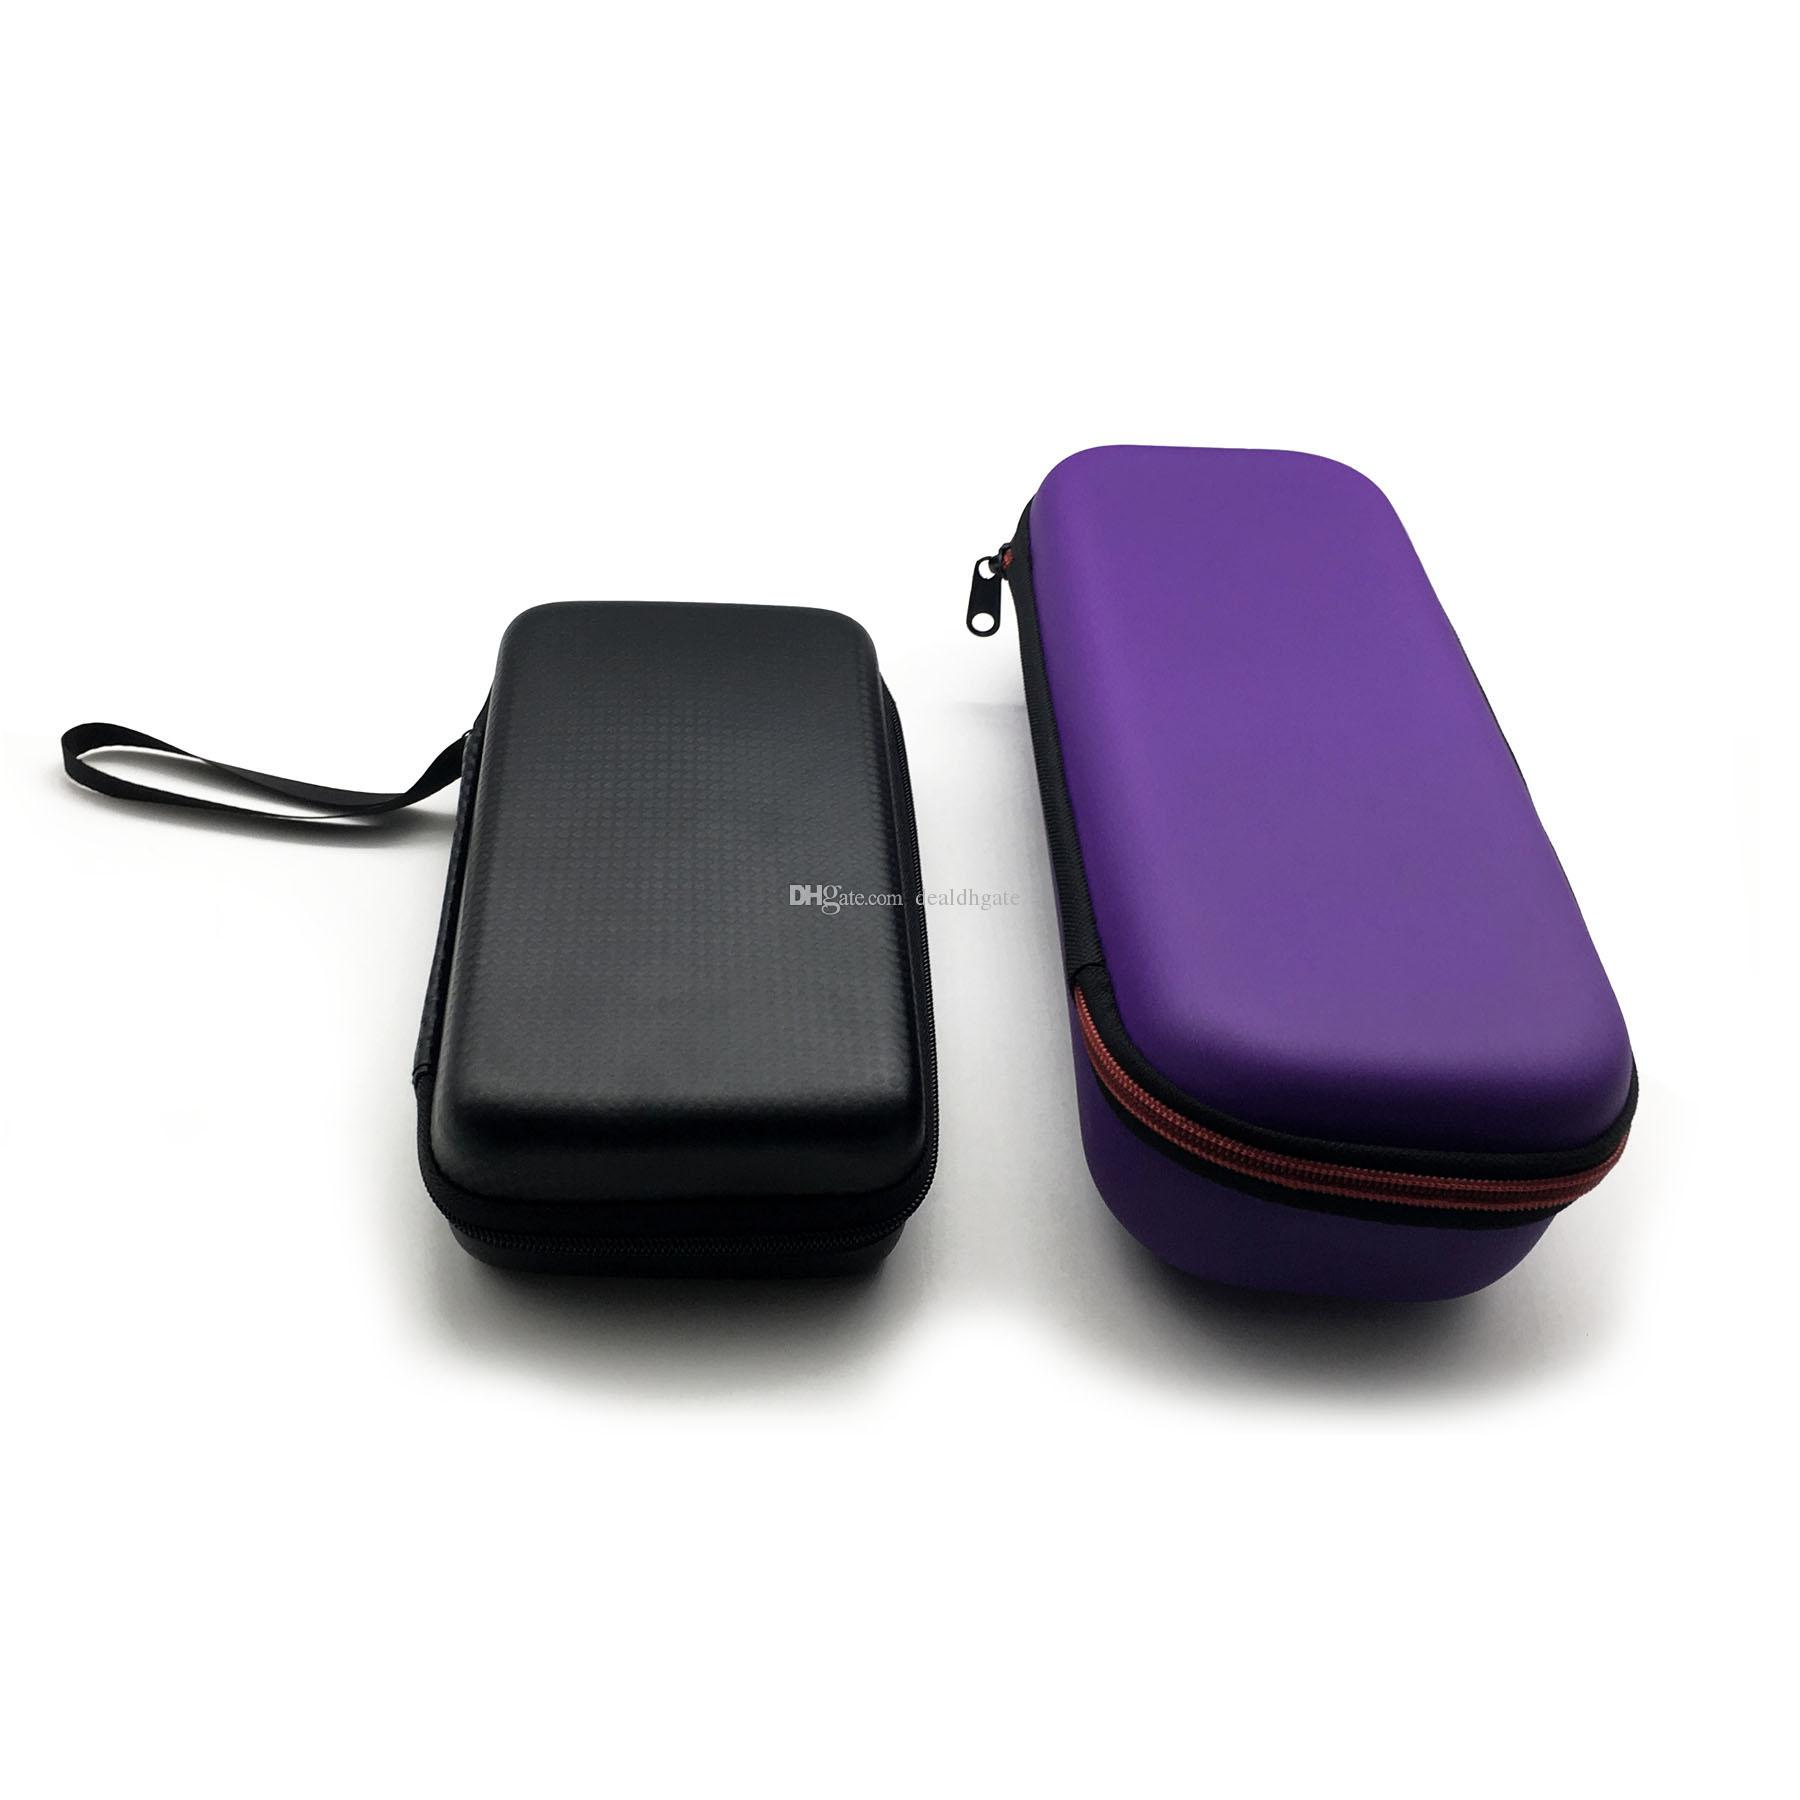 Carrying Zipper Cases Leather Box Storage For Cosmetic Tool Atomizer Electronic Vaporizer E-cig Kit High Quality